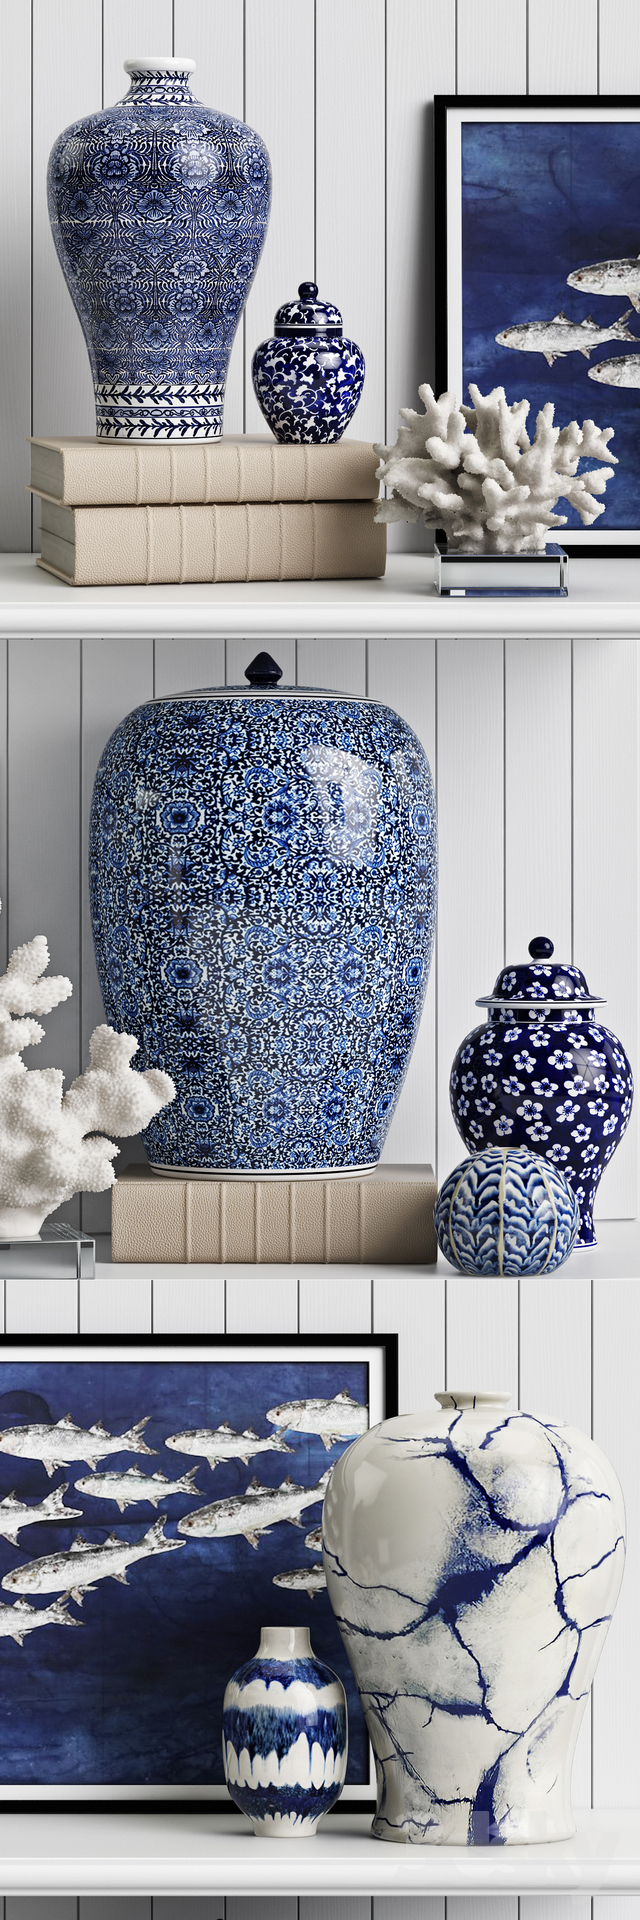 3 Home Decor Trends For Spring Brittany Stager: Williams-Sonoma Home Decor Set 3